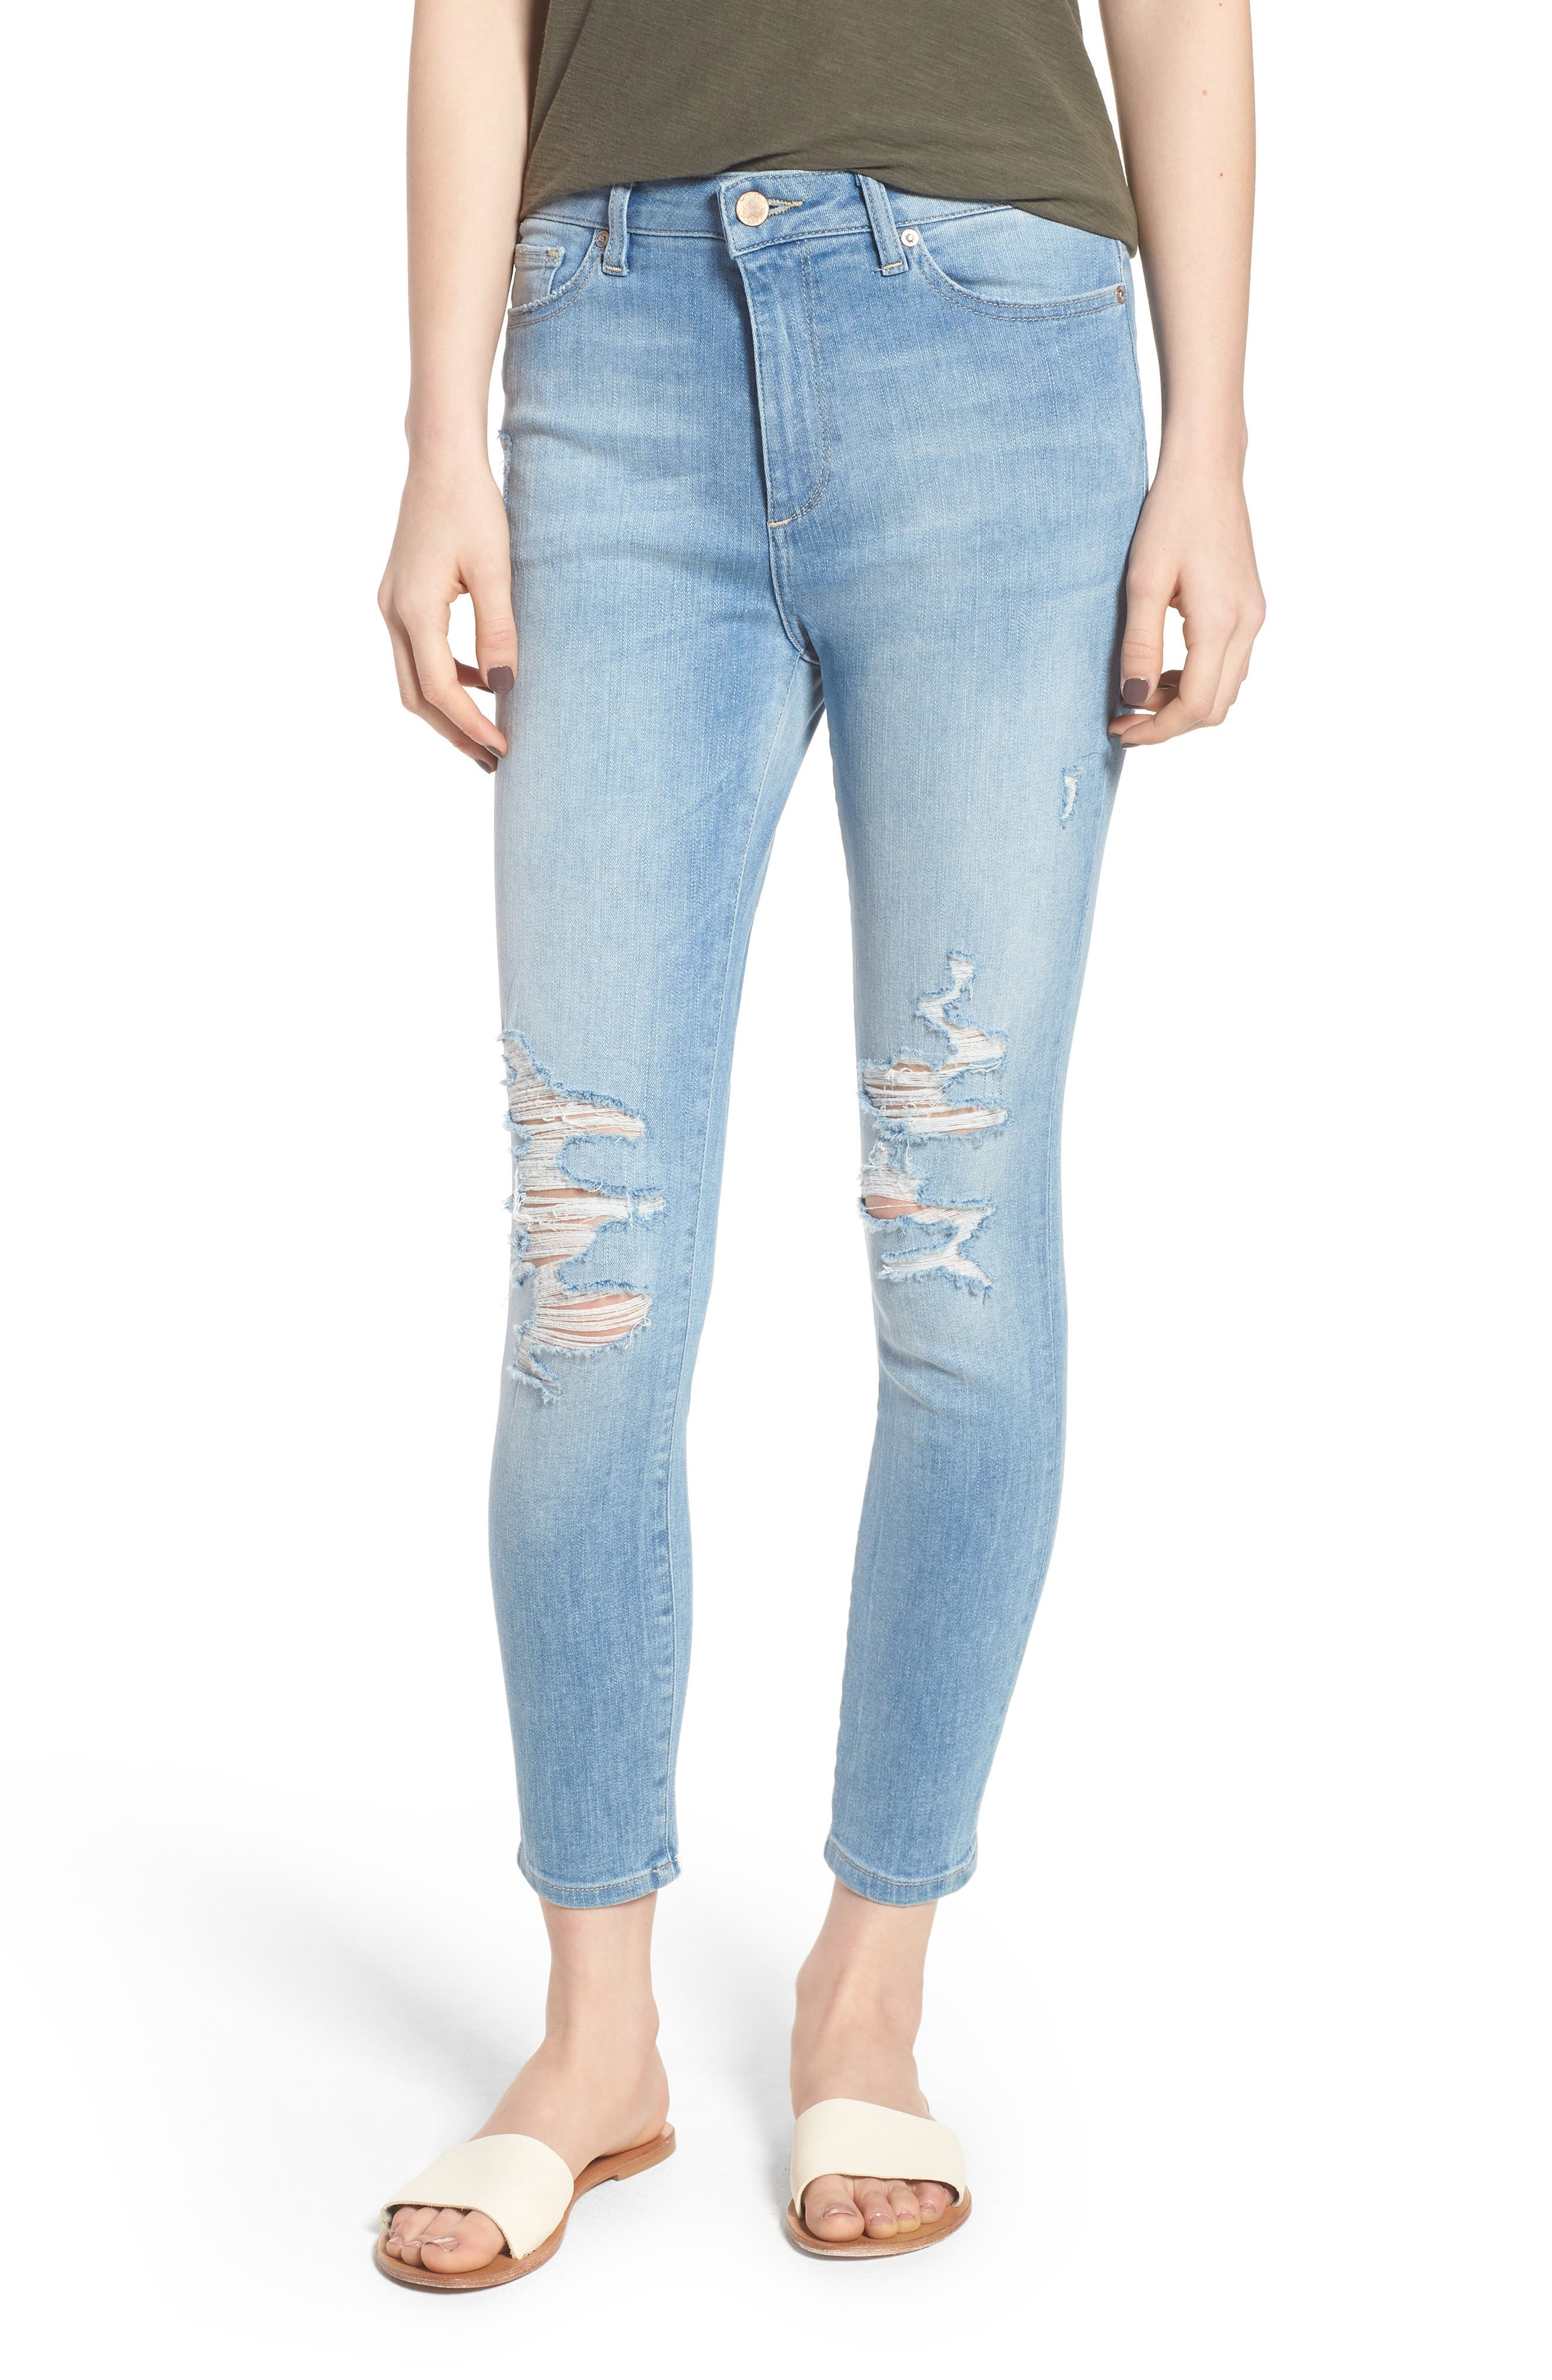 Chrissy Trimtone Ripped High Waist Skinny Jeans,                             Main thumbnail 1, color,                             430